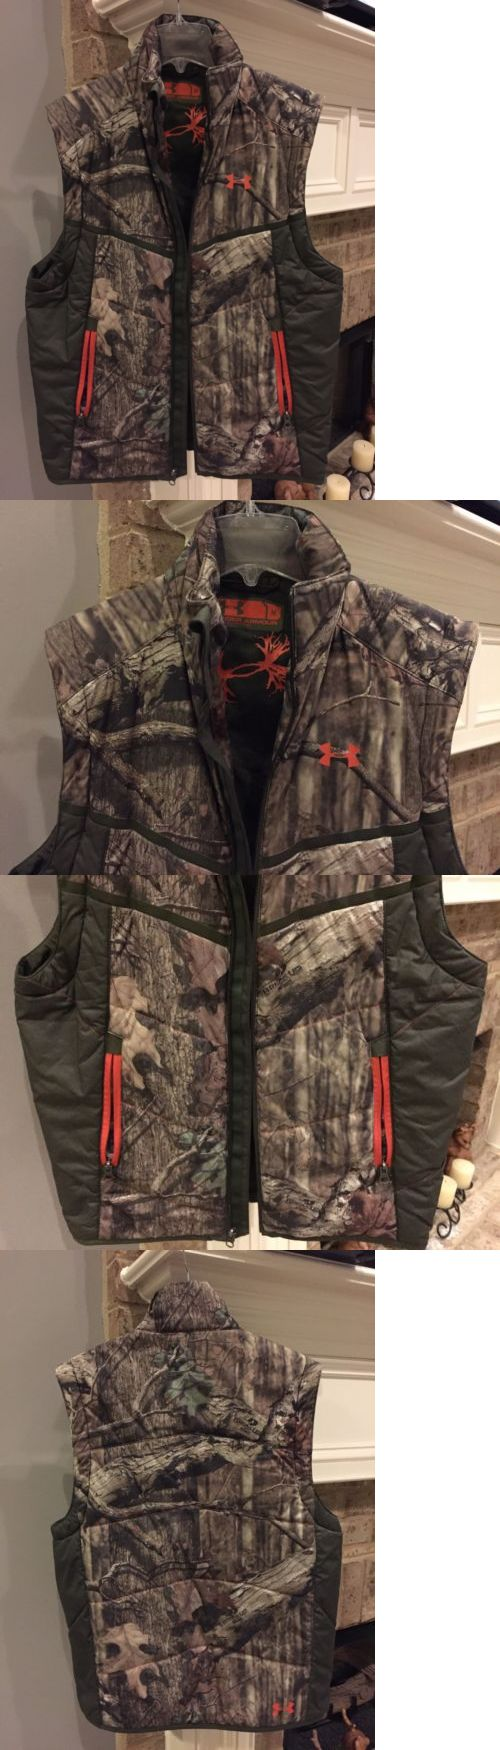 Coats and Jackets 177868: M Under Armour Mens Puffer Vest Full Zip Up Camouflage Mossy Oak Break Up Nwot BUY IT NOW ONLY: $64.99